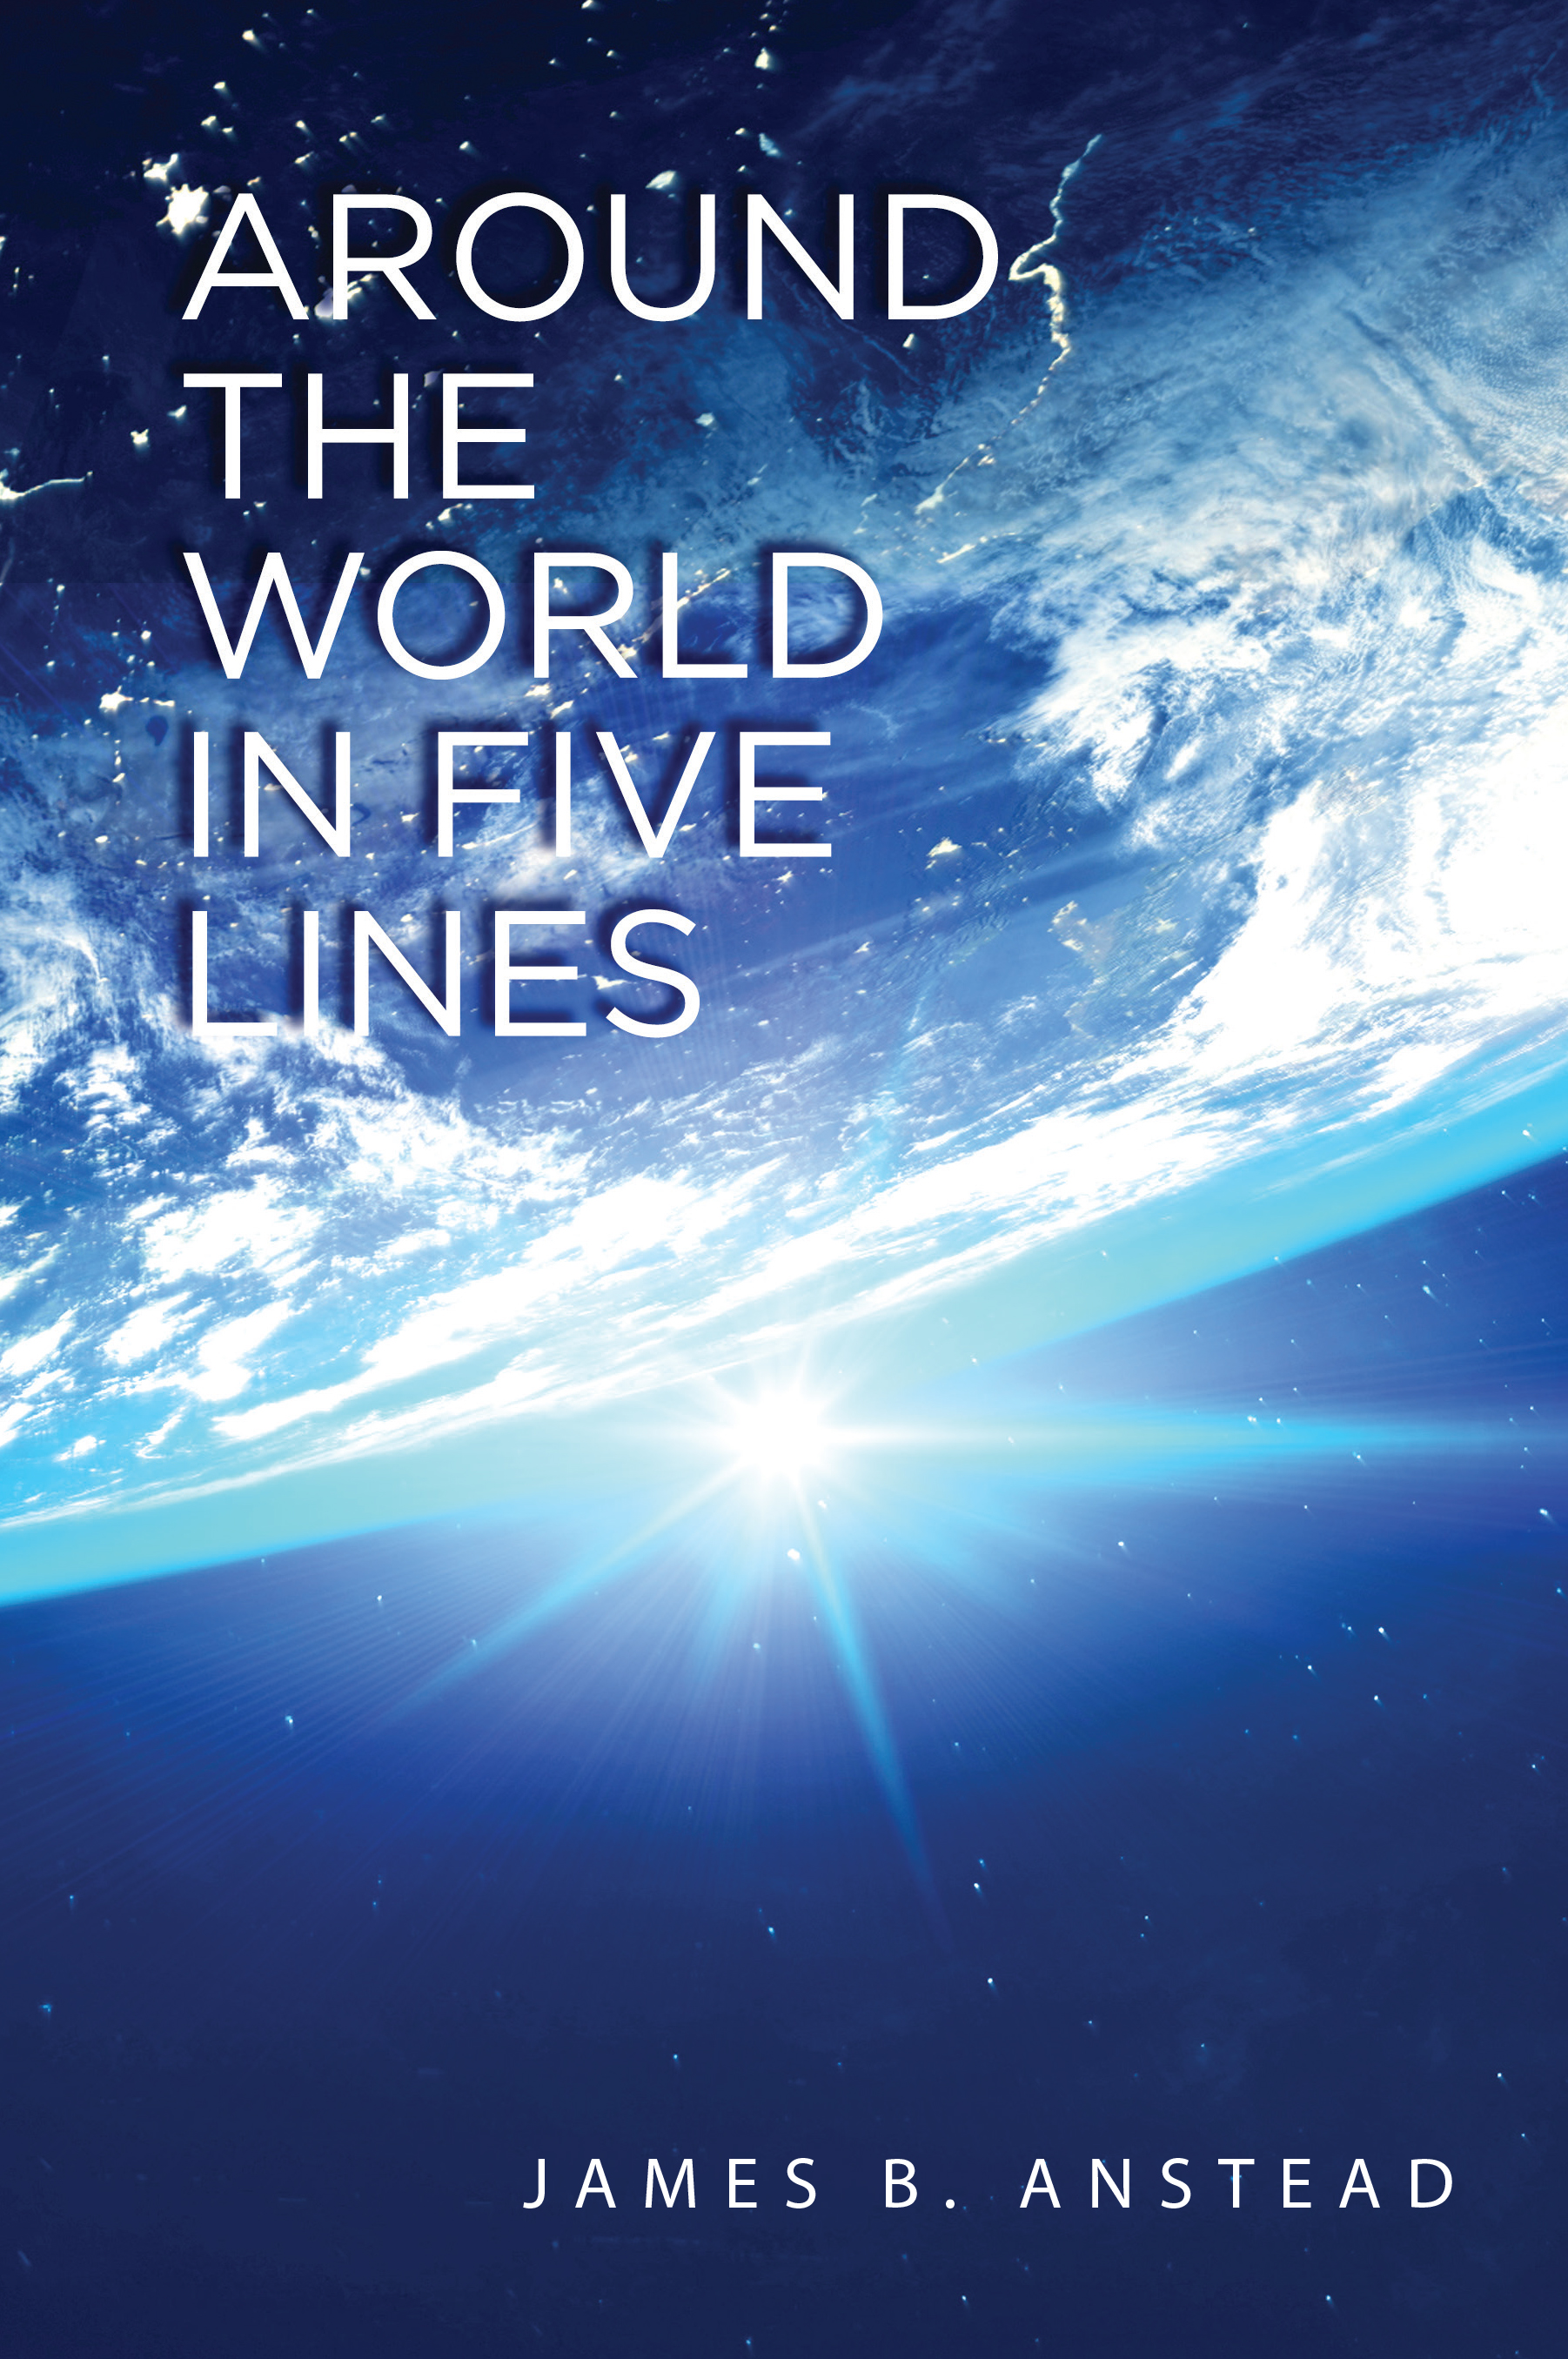 Hollywood Book Reviews on Around the World in Five Lines by James B. Anstead